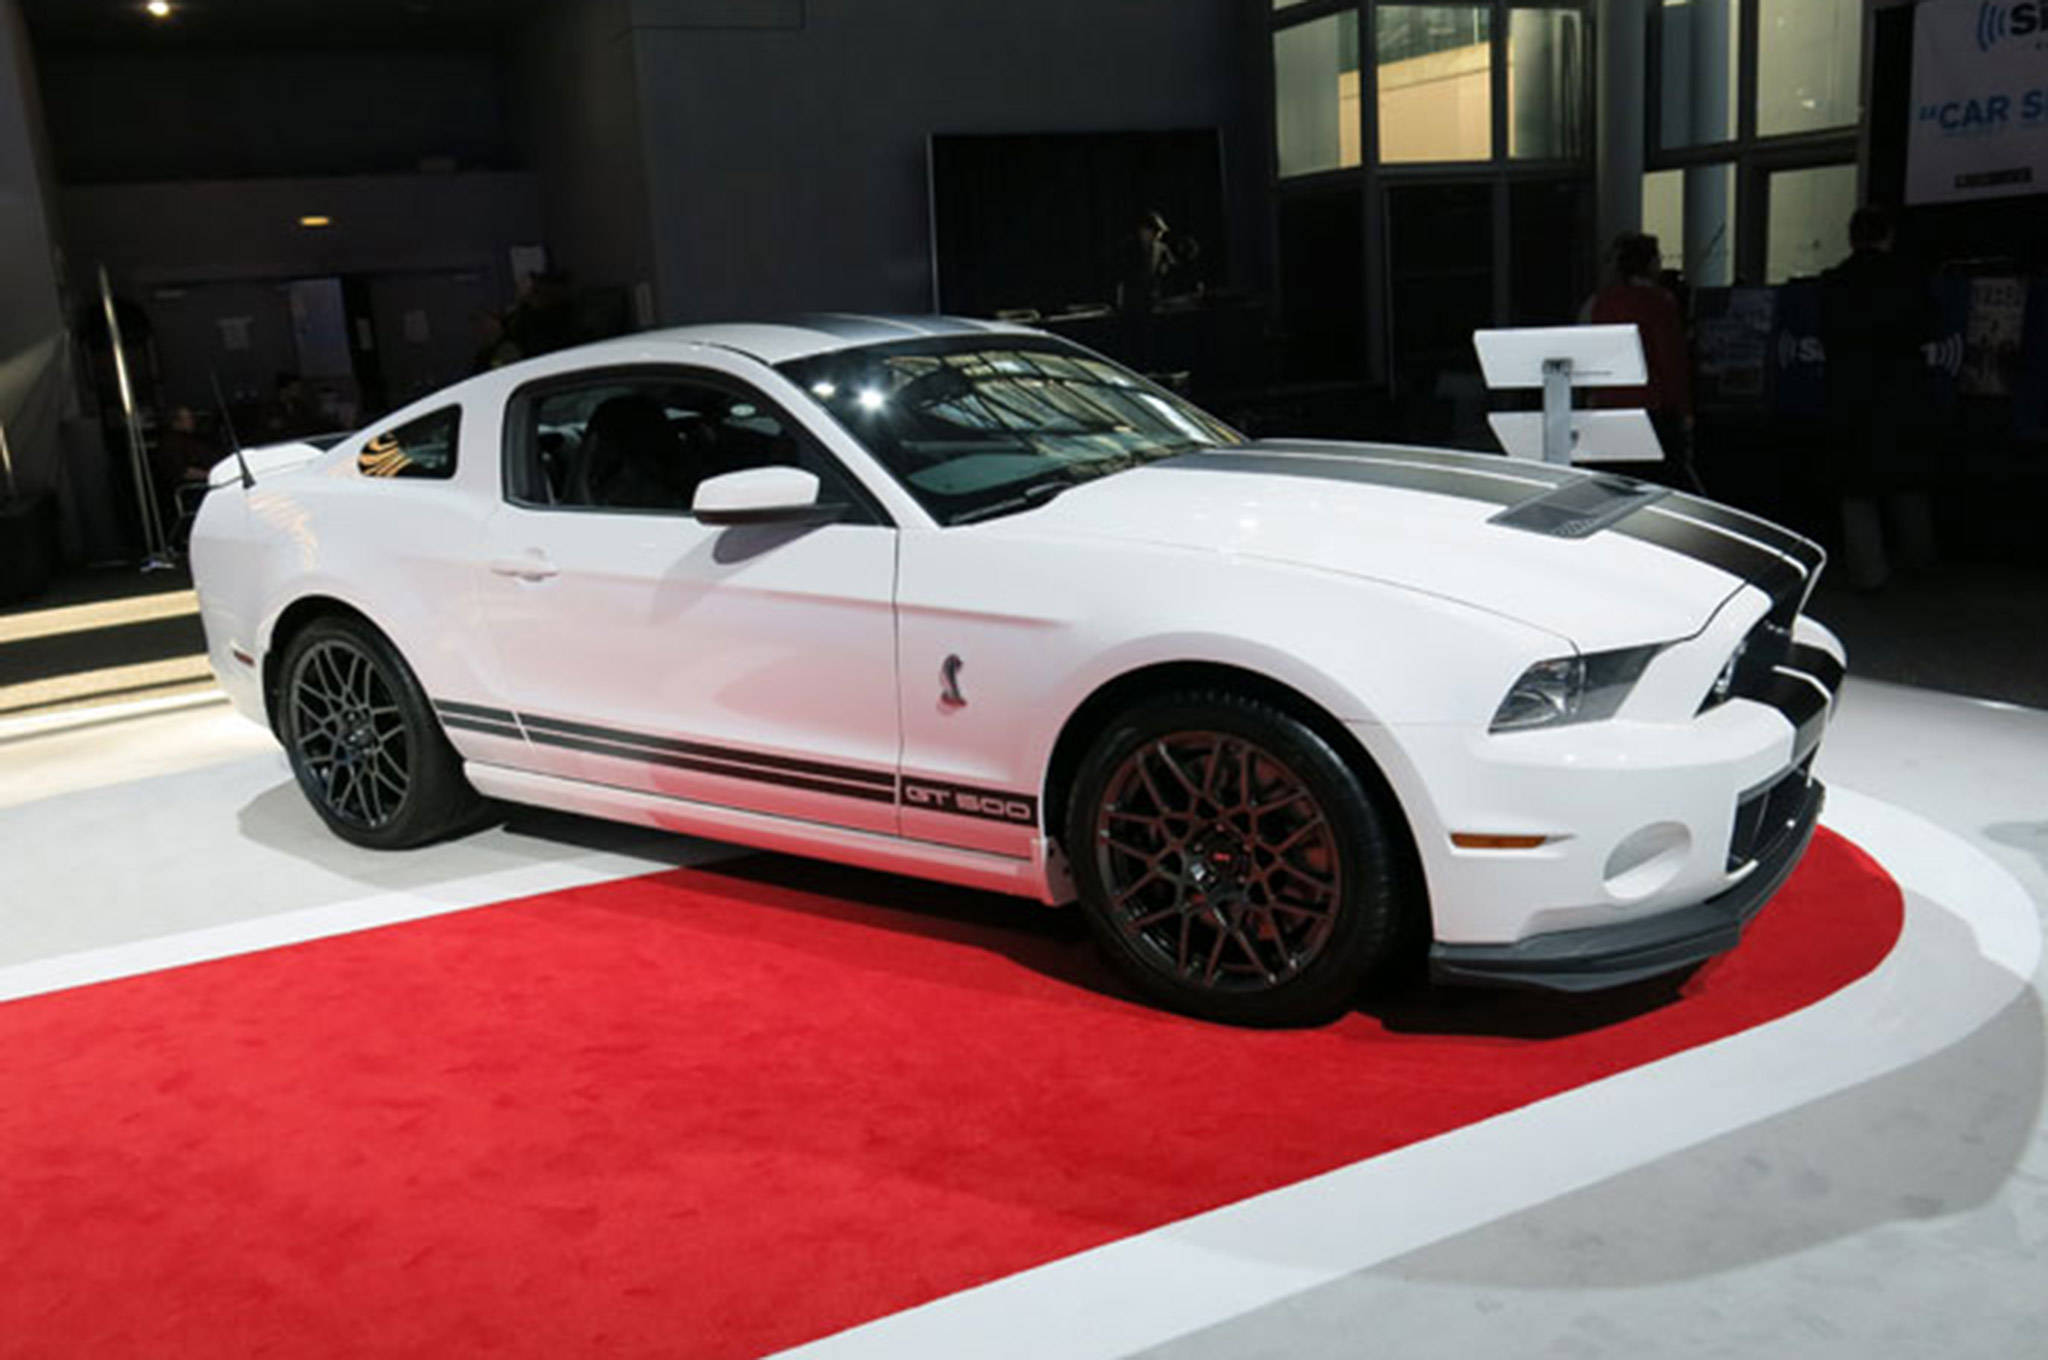 Ford Mustang Shelby Gt350 Vs Gt500 White Front